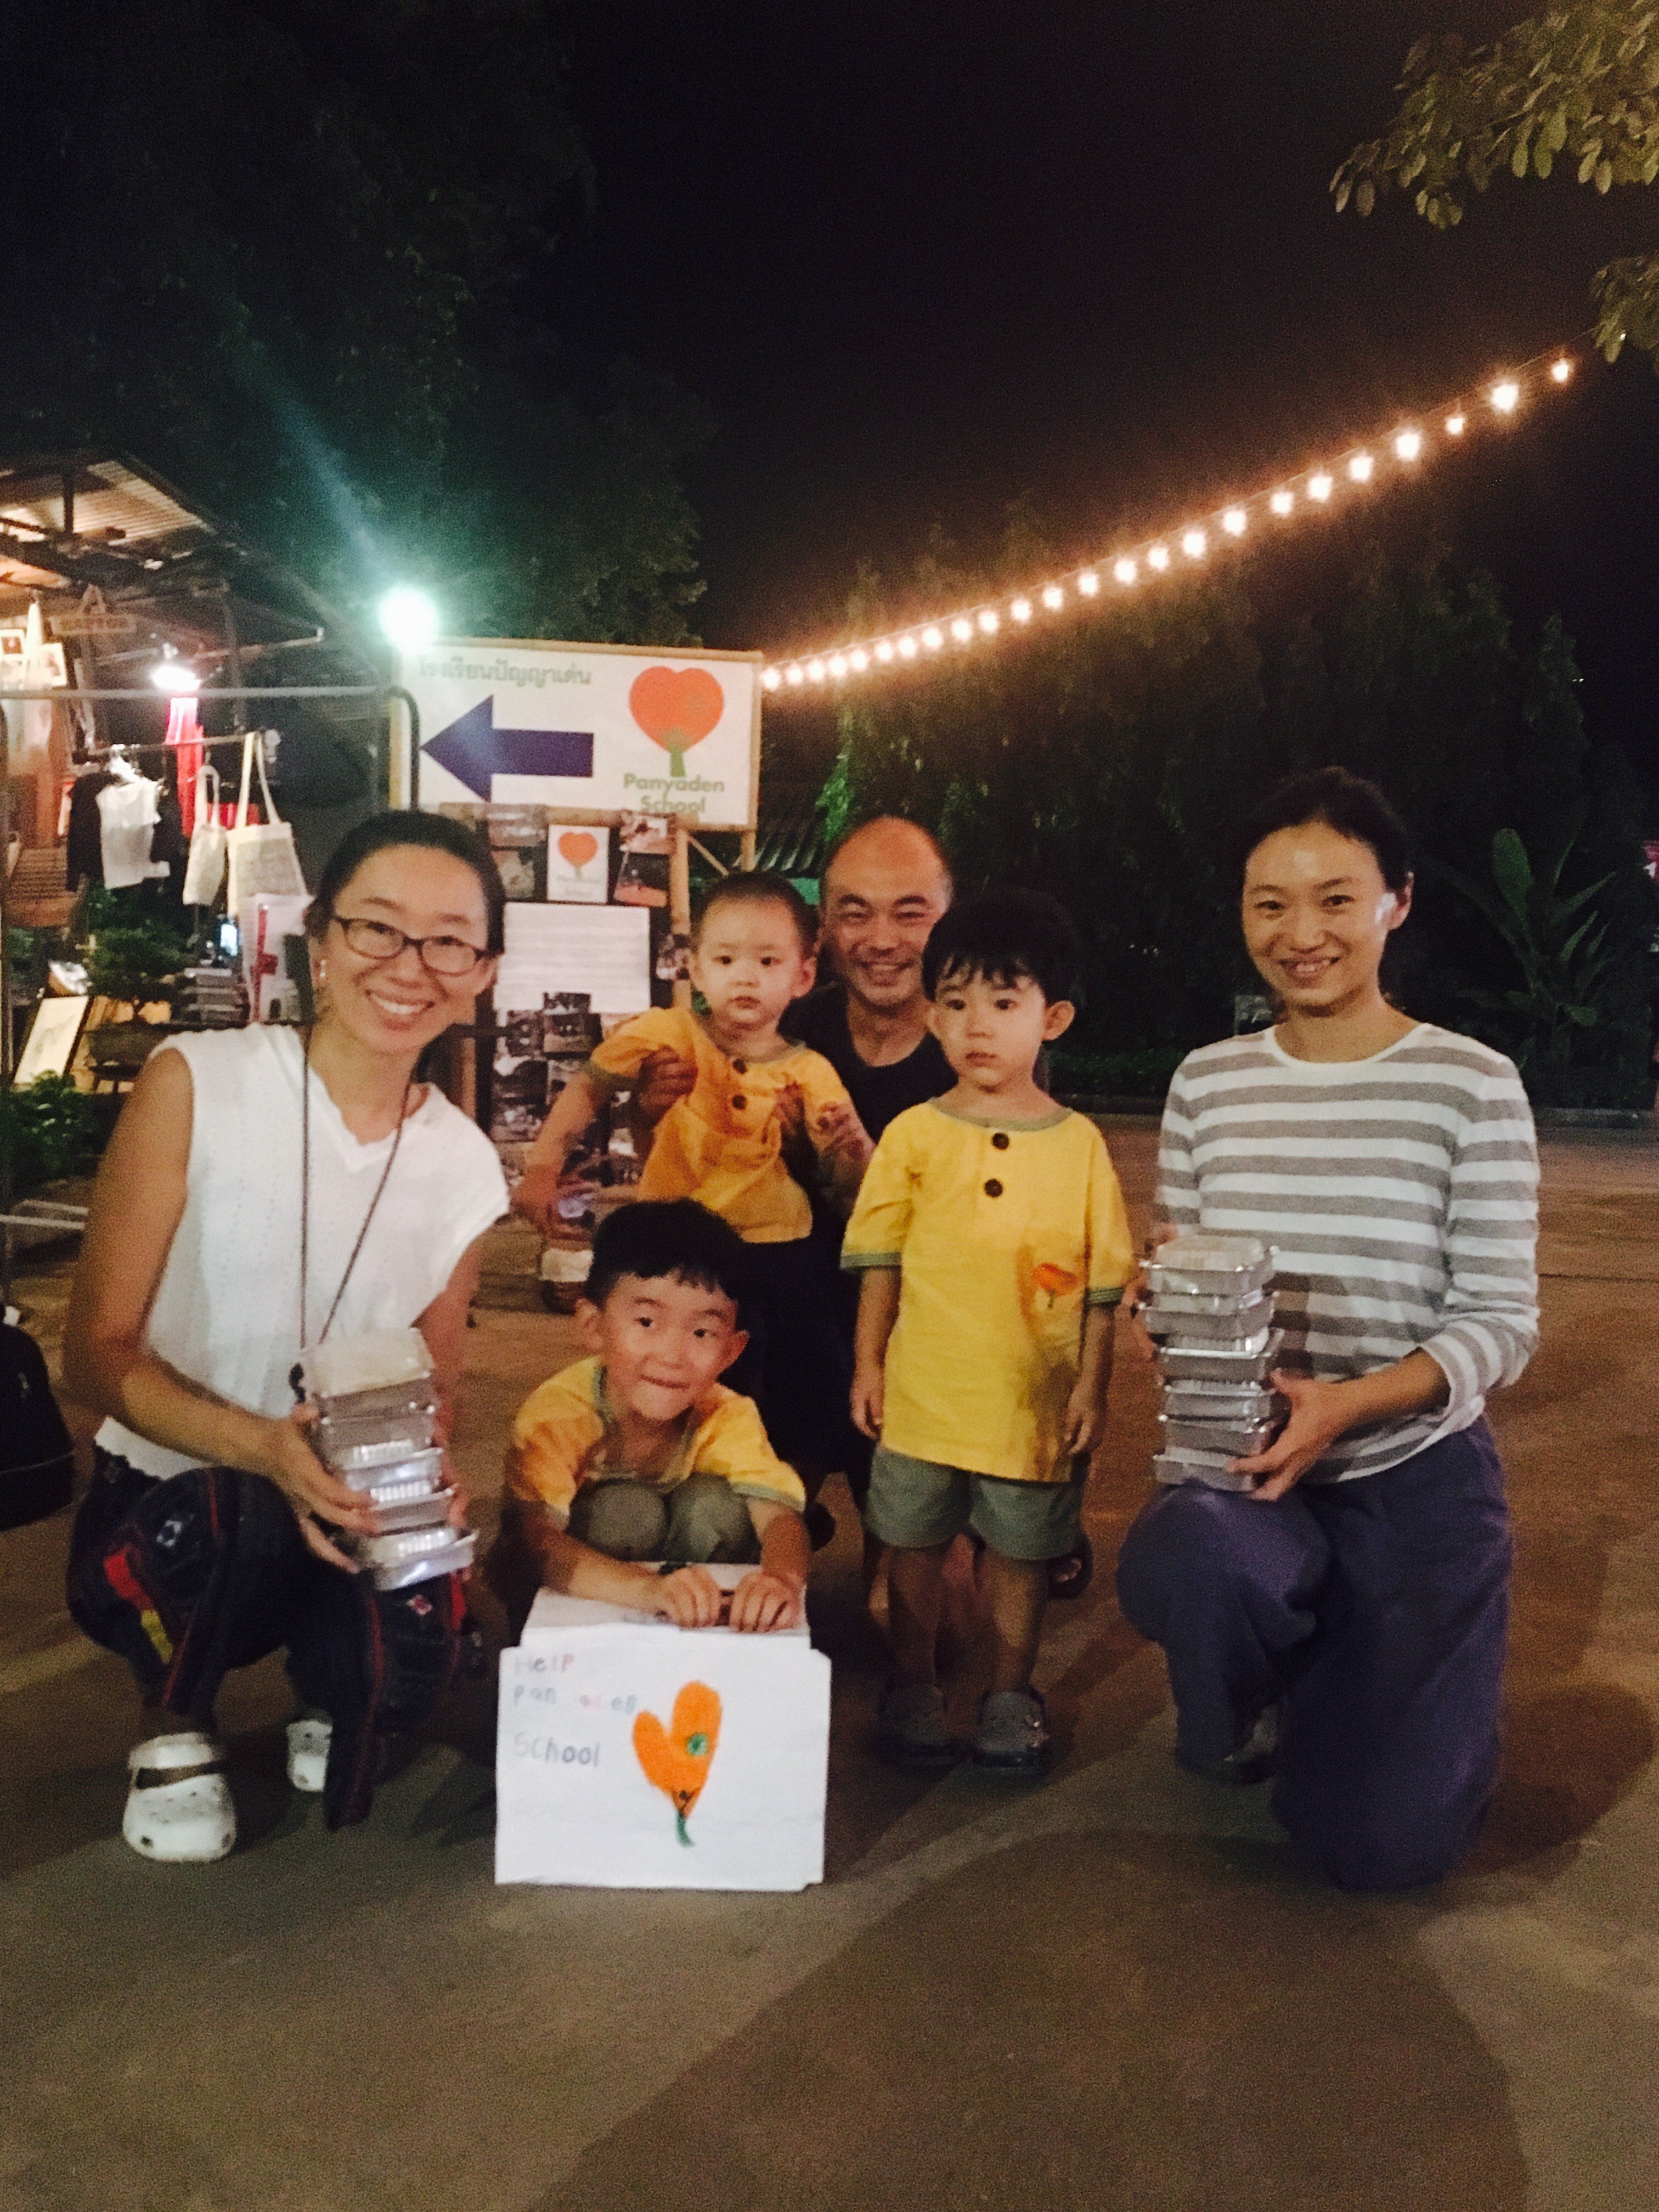 Panyaden Fundraiser Baan Kang Wat: Chinese students and their families chip in to help raise funds for our school